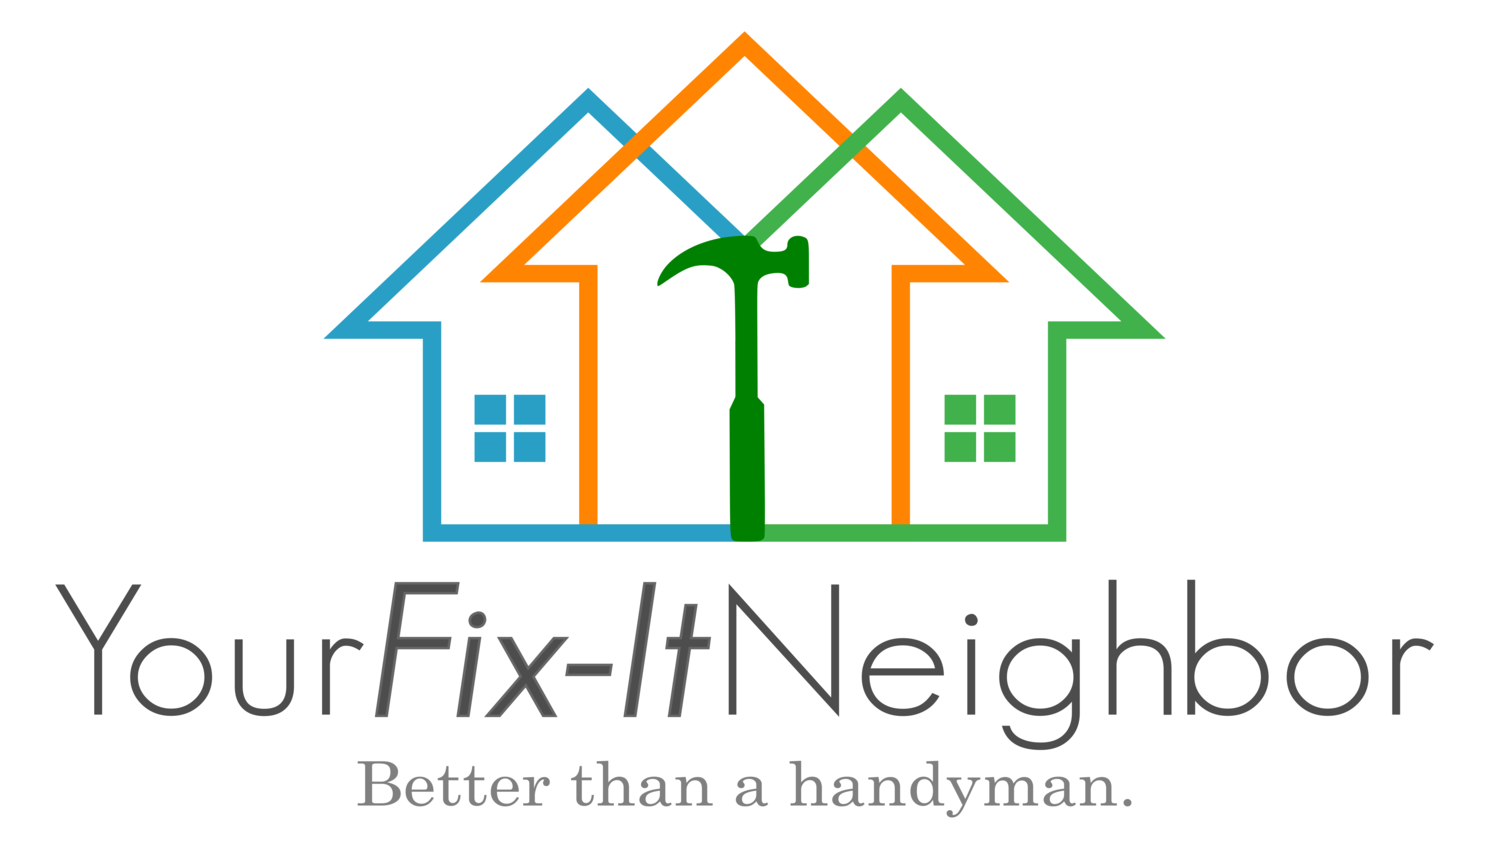 Your Fix-It Neighbor